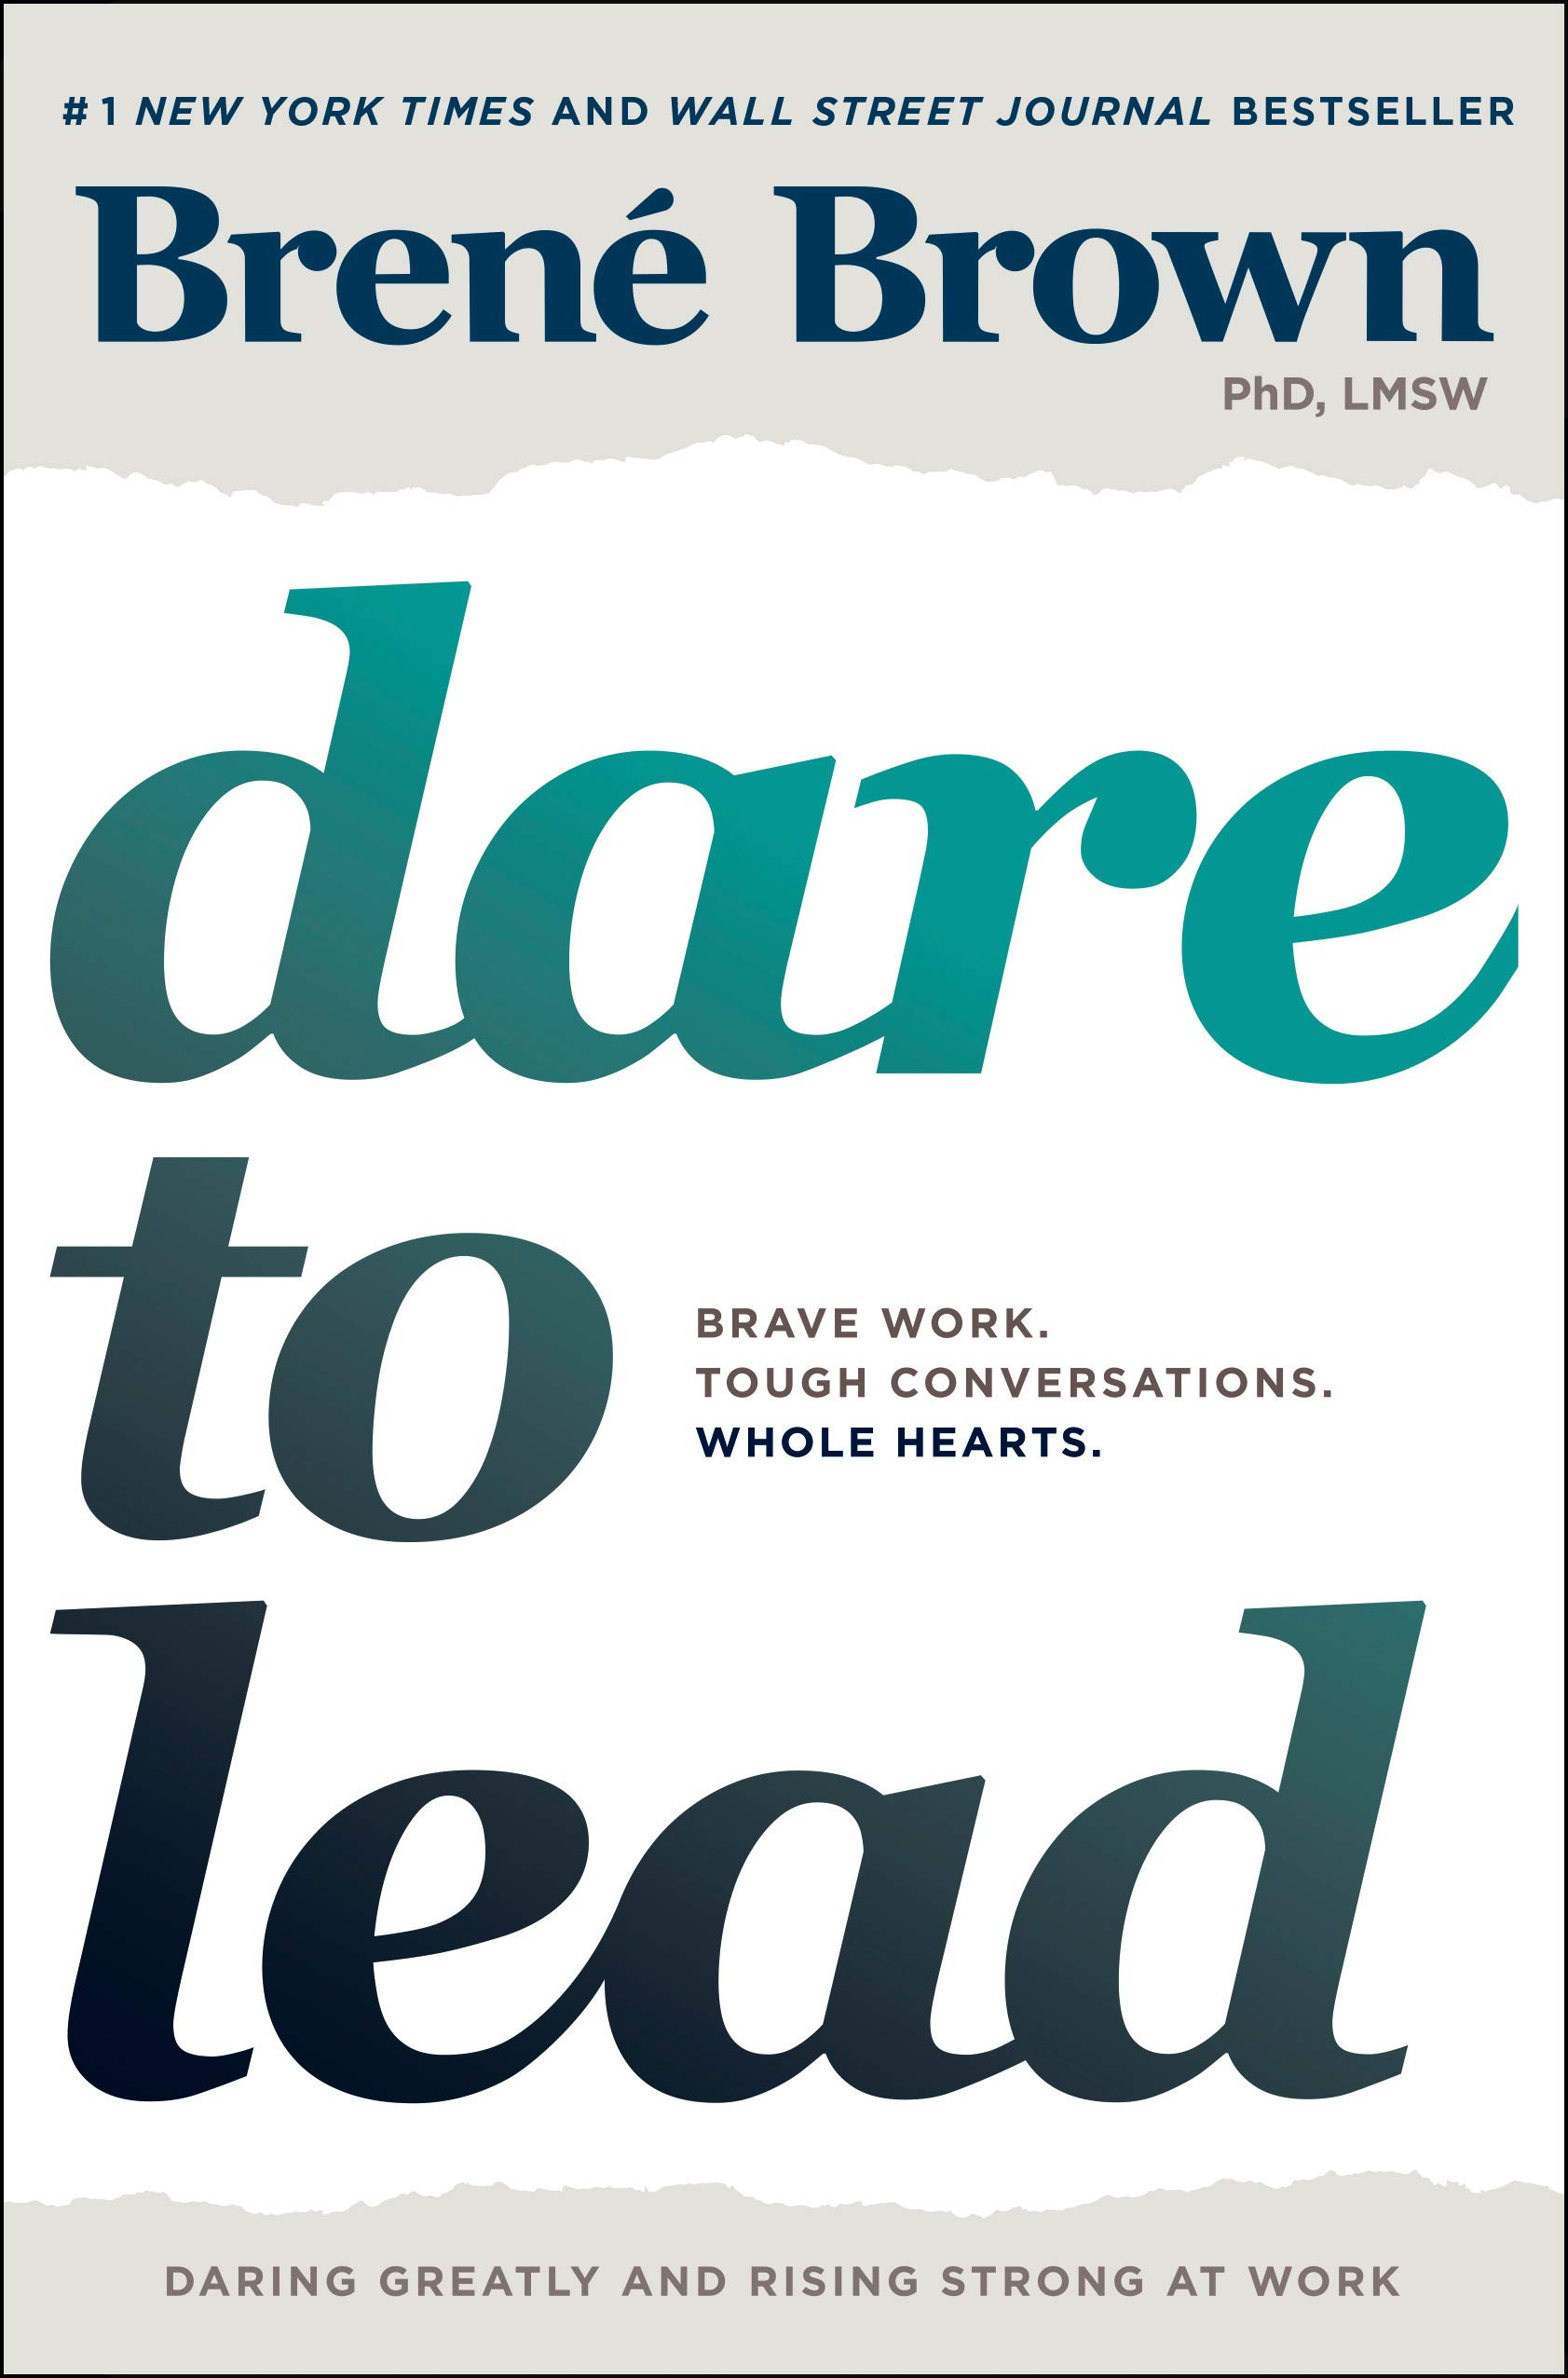 The cover of Dare to Lead